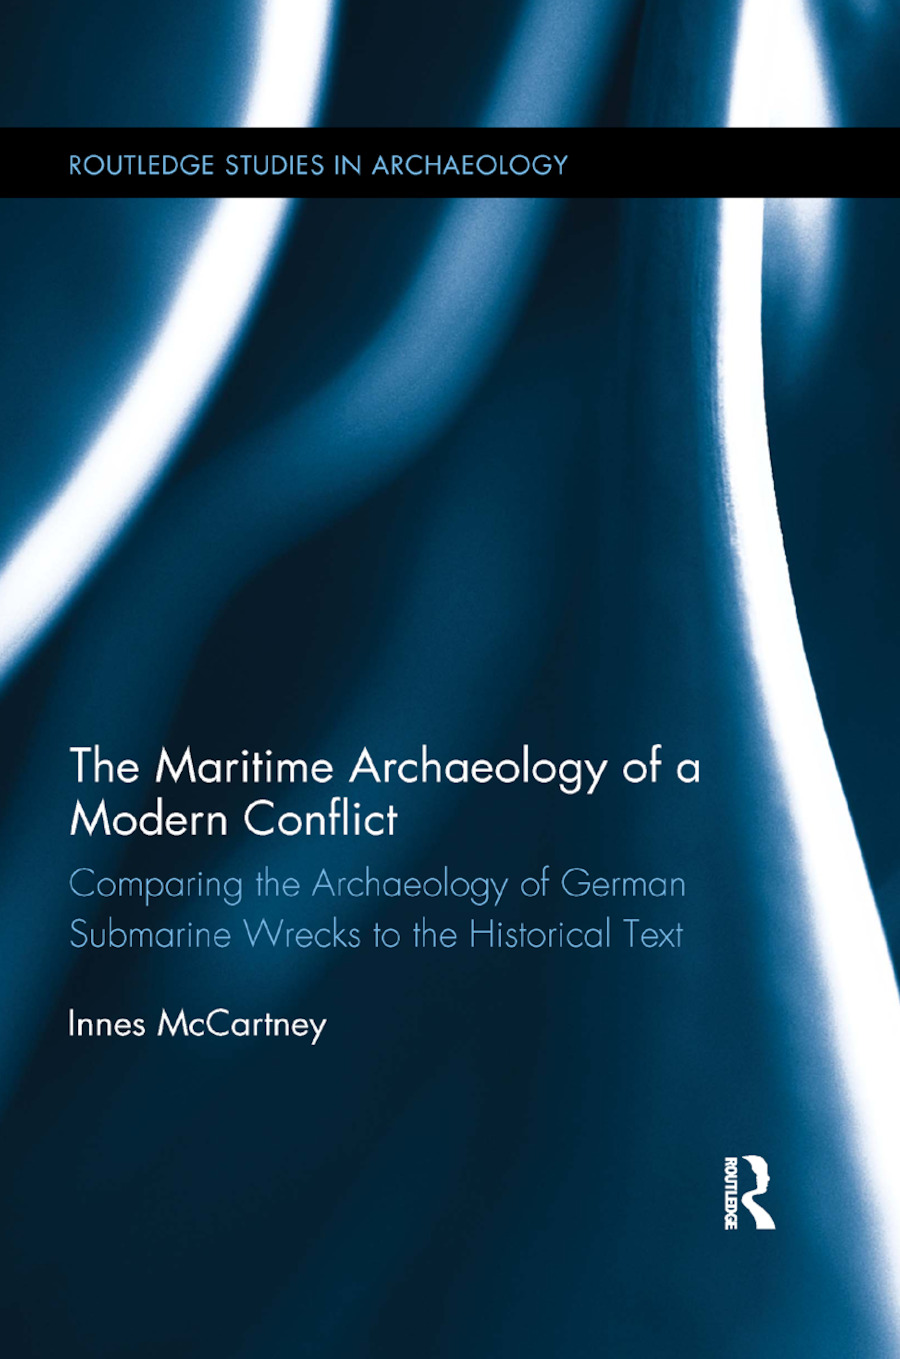 The Maritime Archaeology of a Modern Conflict: Comparing the Archaeology of German Submarine Wrecks to the Historical Text book cover